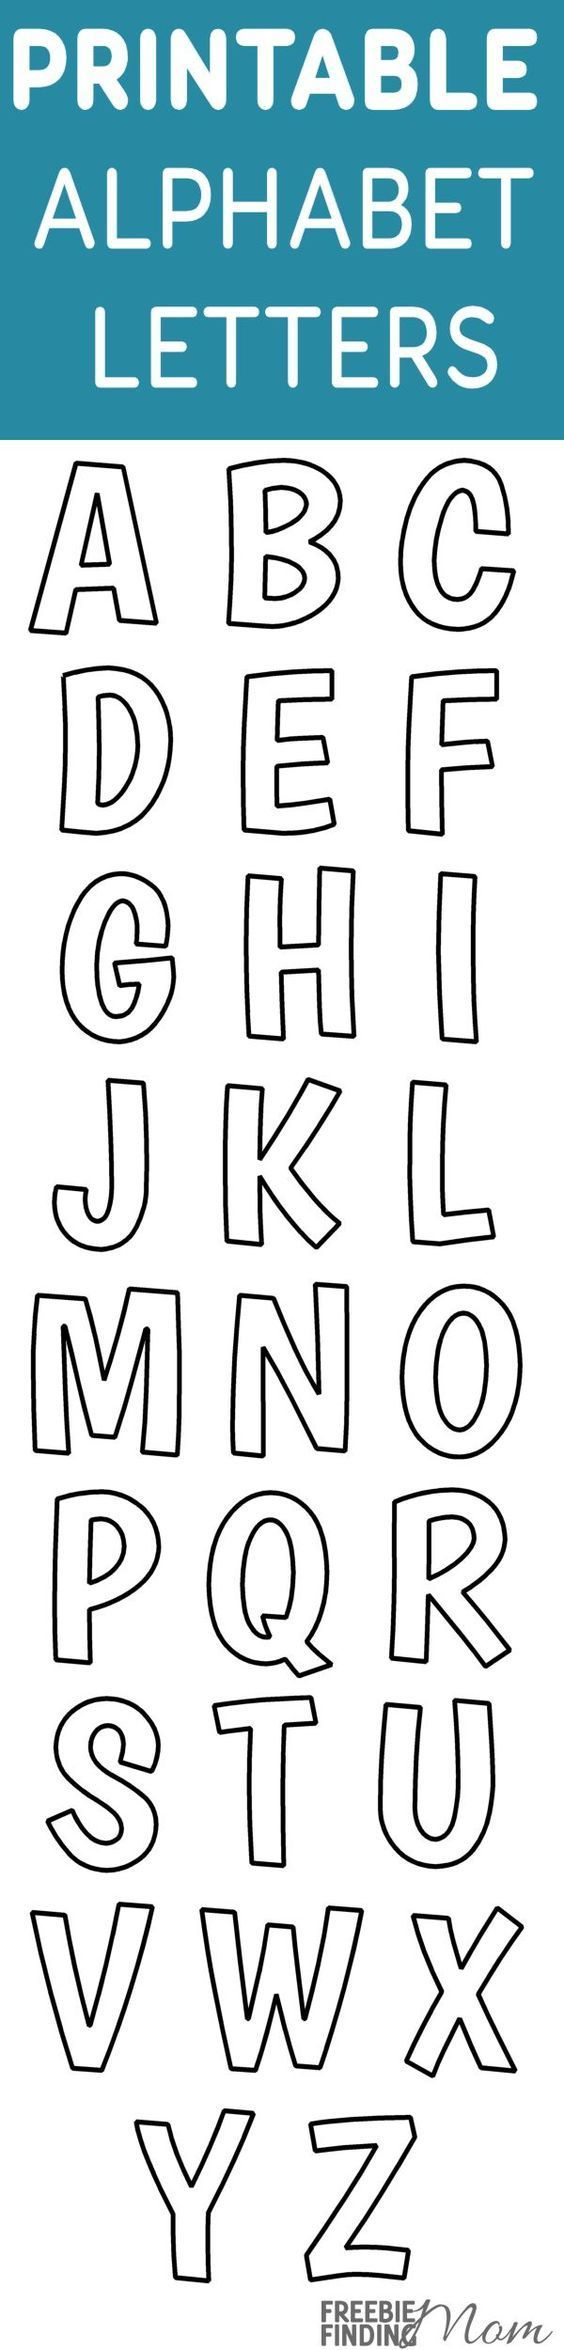 free alphabet templates - large printable letters to cut out letters dutch and